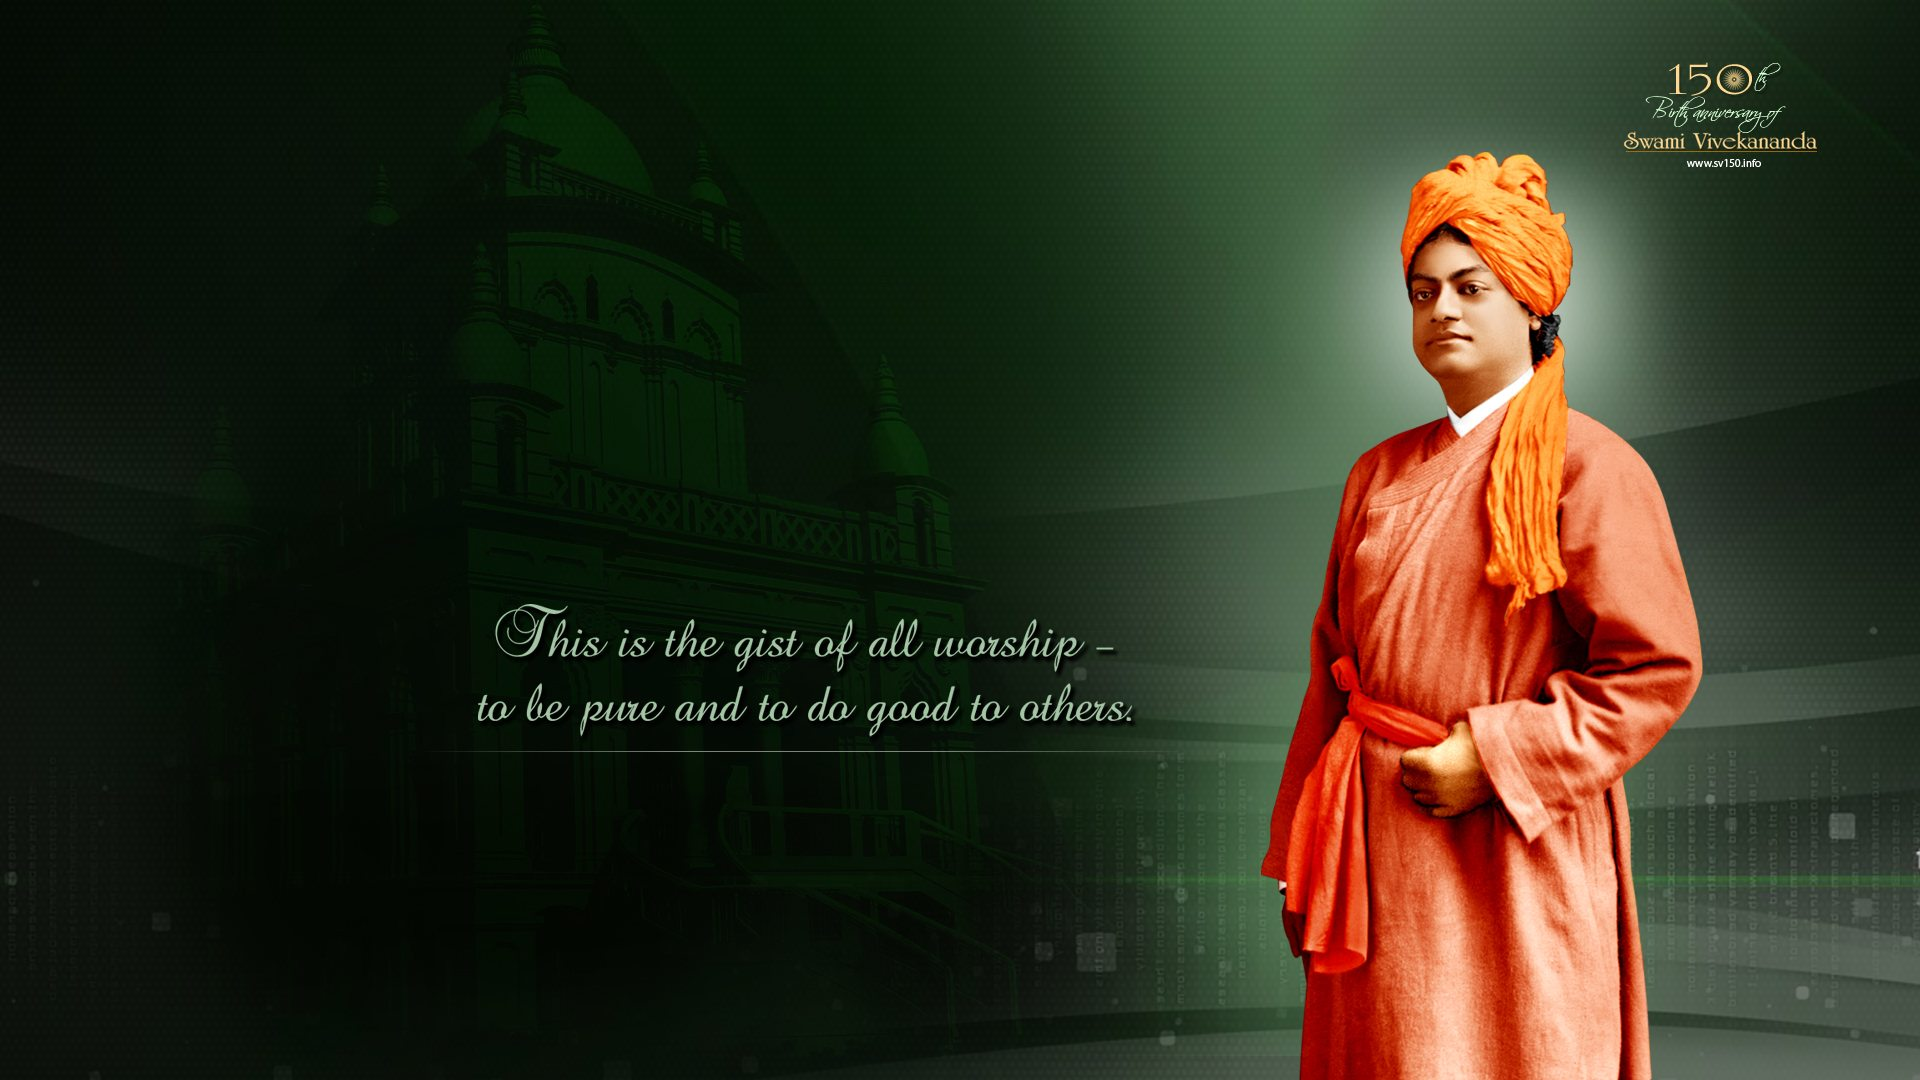 Amazing Life incidents of Swami Vivekananda